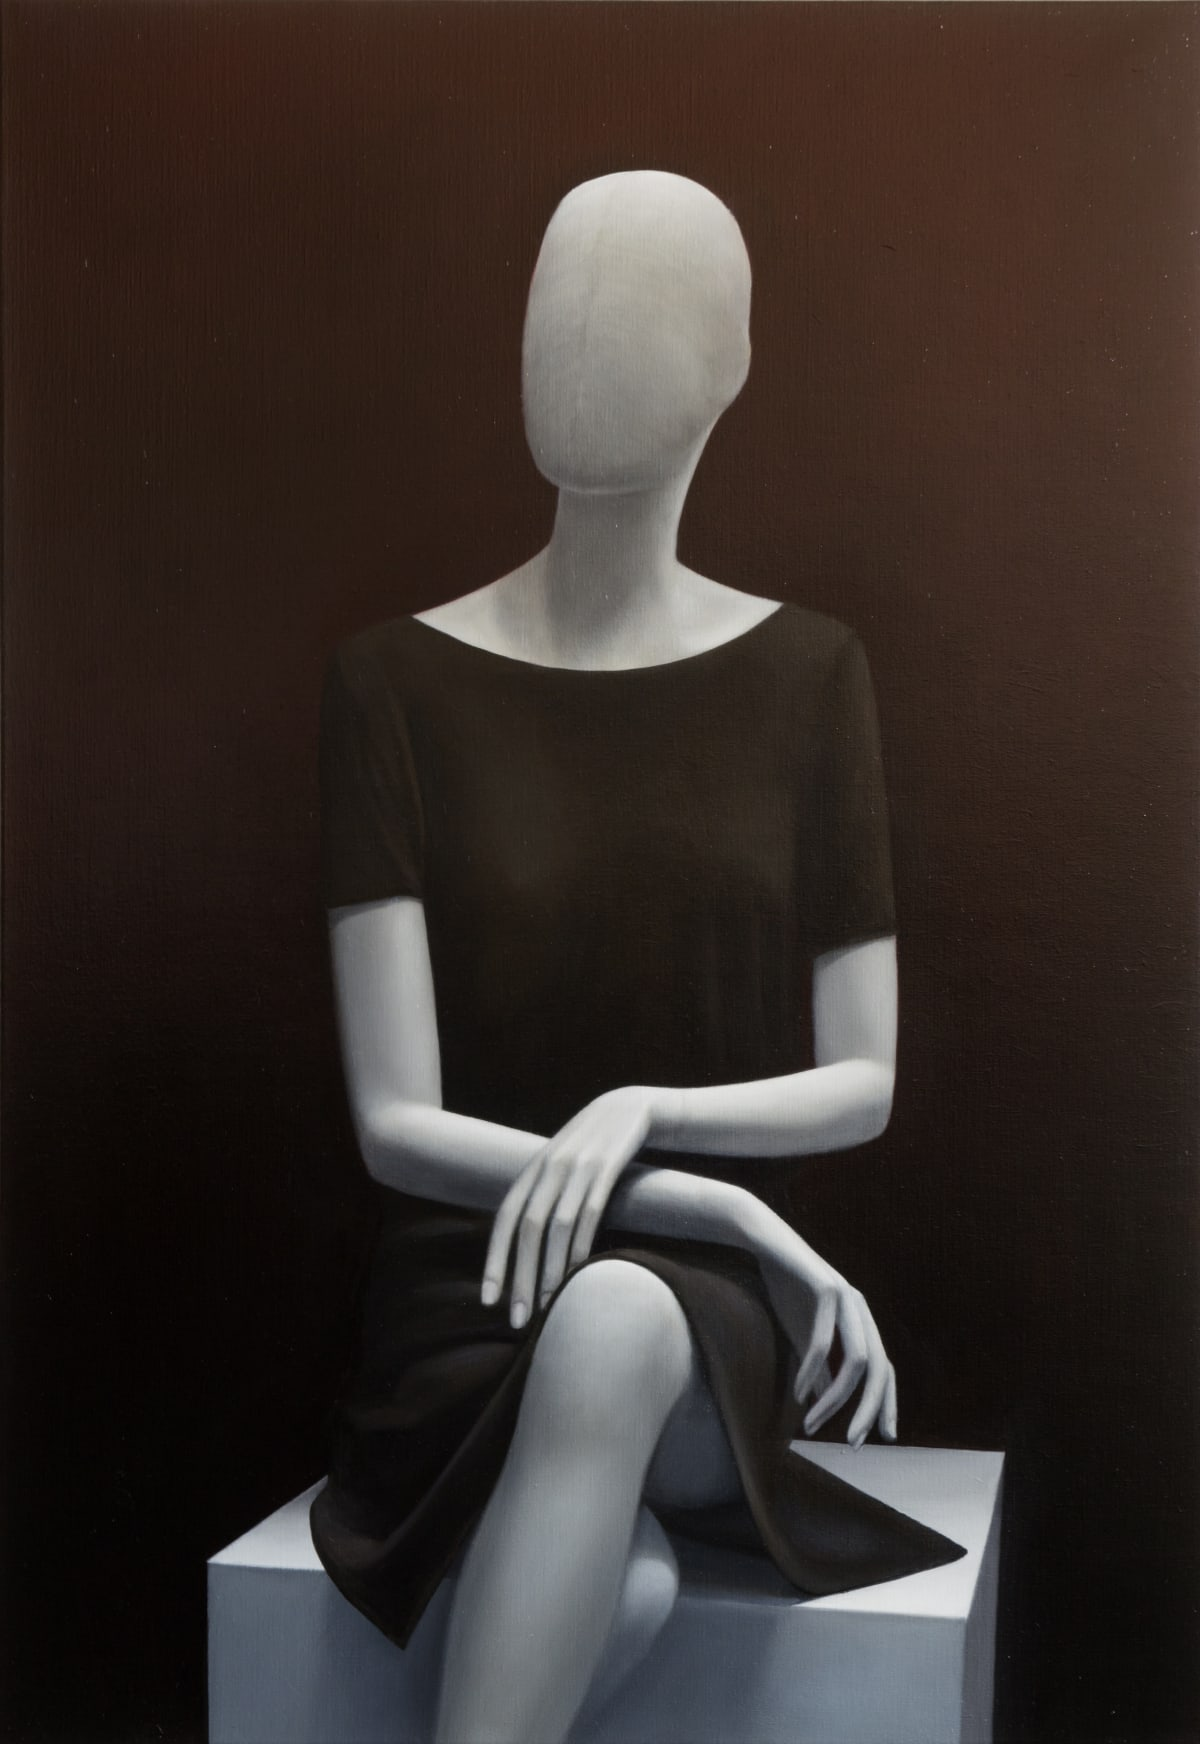 ARNOUT KILLIAN Sitting Mannequin, 2017 oil on canvas 140 x 100 cm signed and dated